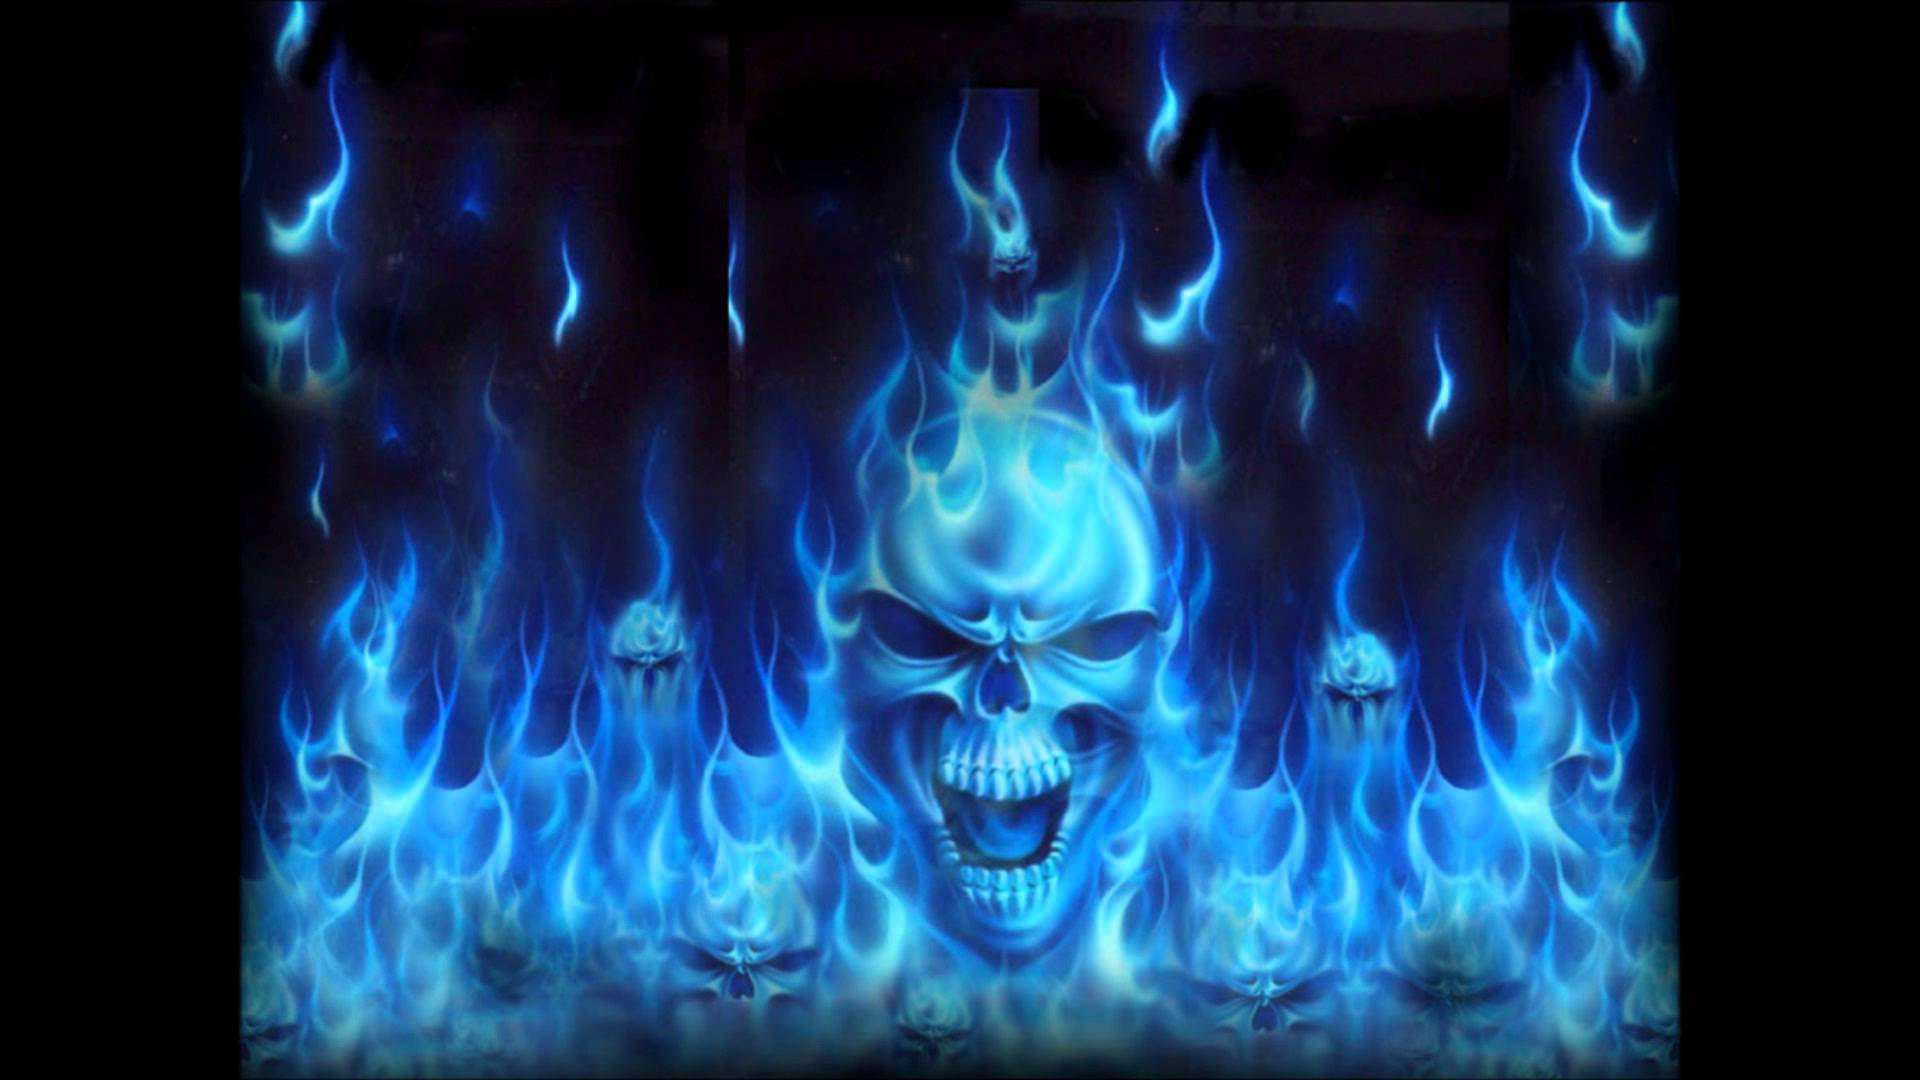 Blue Fire Wallpapers HD   New HD Images 1920x1080